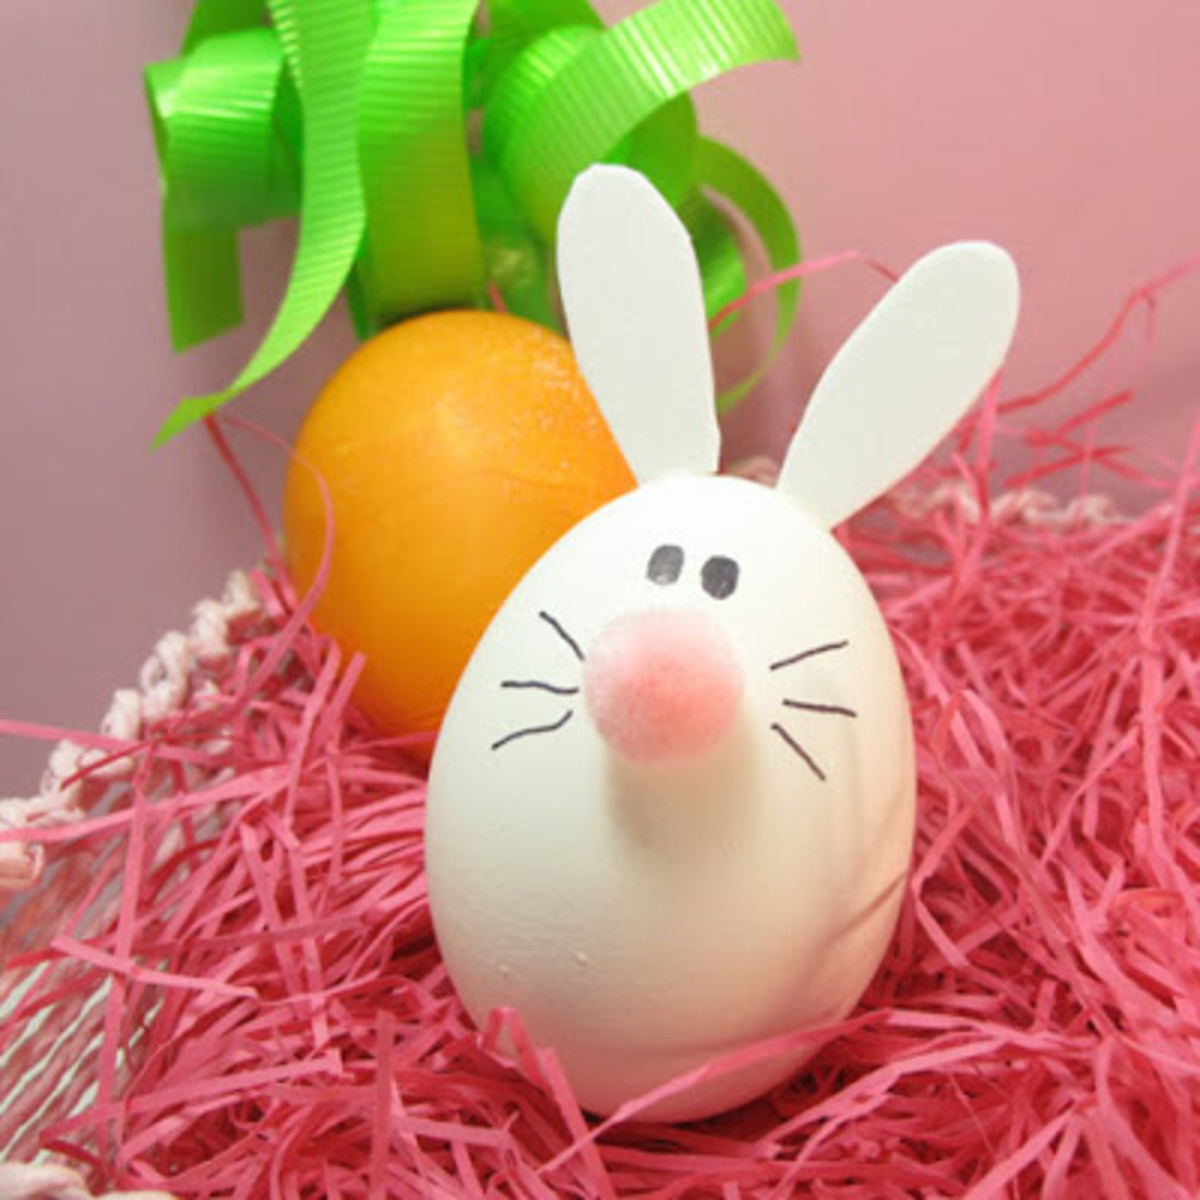 Here's the Bunny egg that goes along with the Lamb egg above.  Isn't it cute.